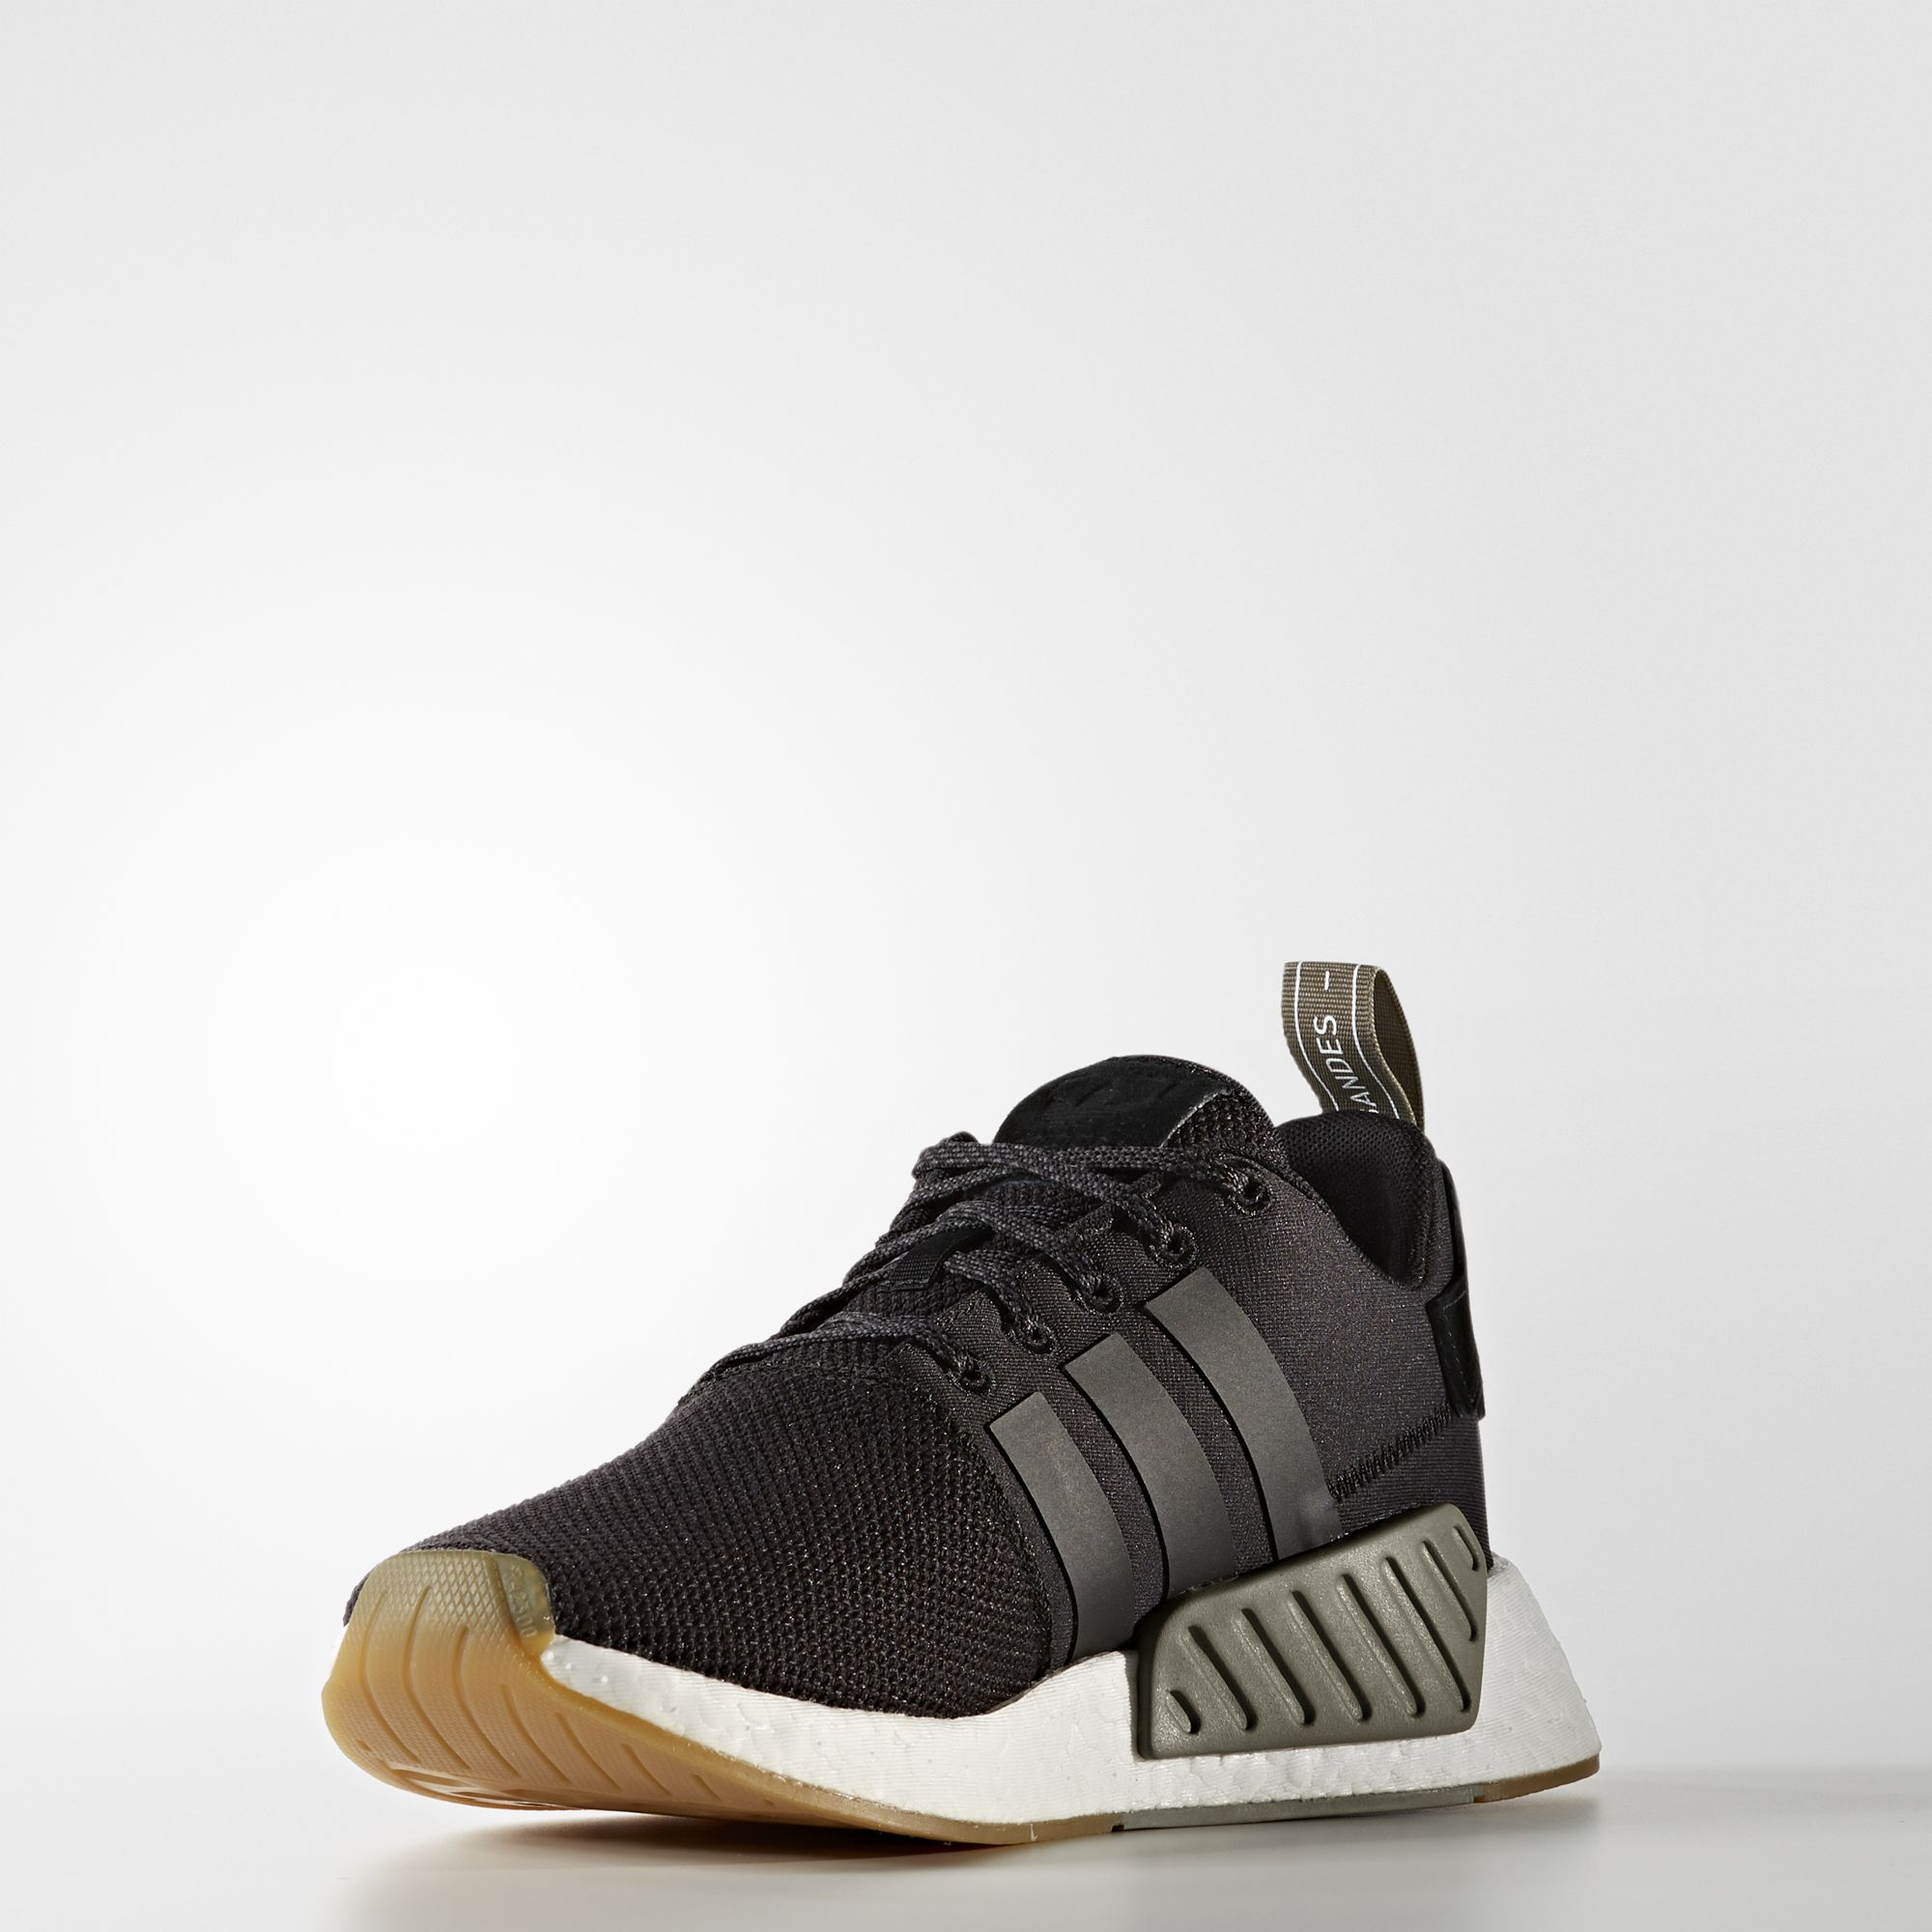 BY9917 adidas NMD R2 Utility Black 3